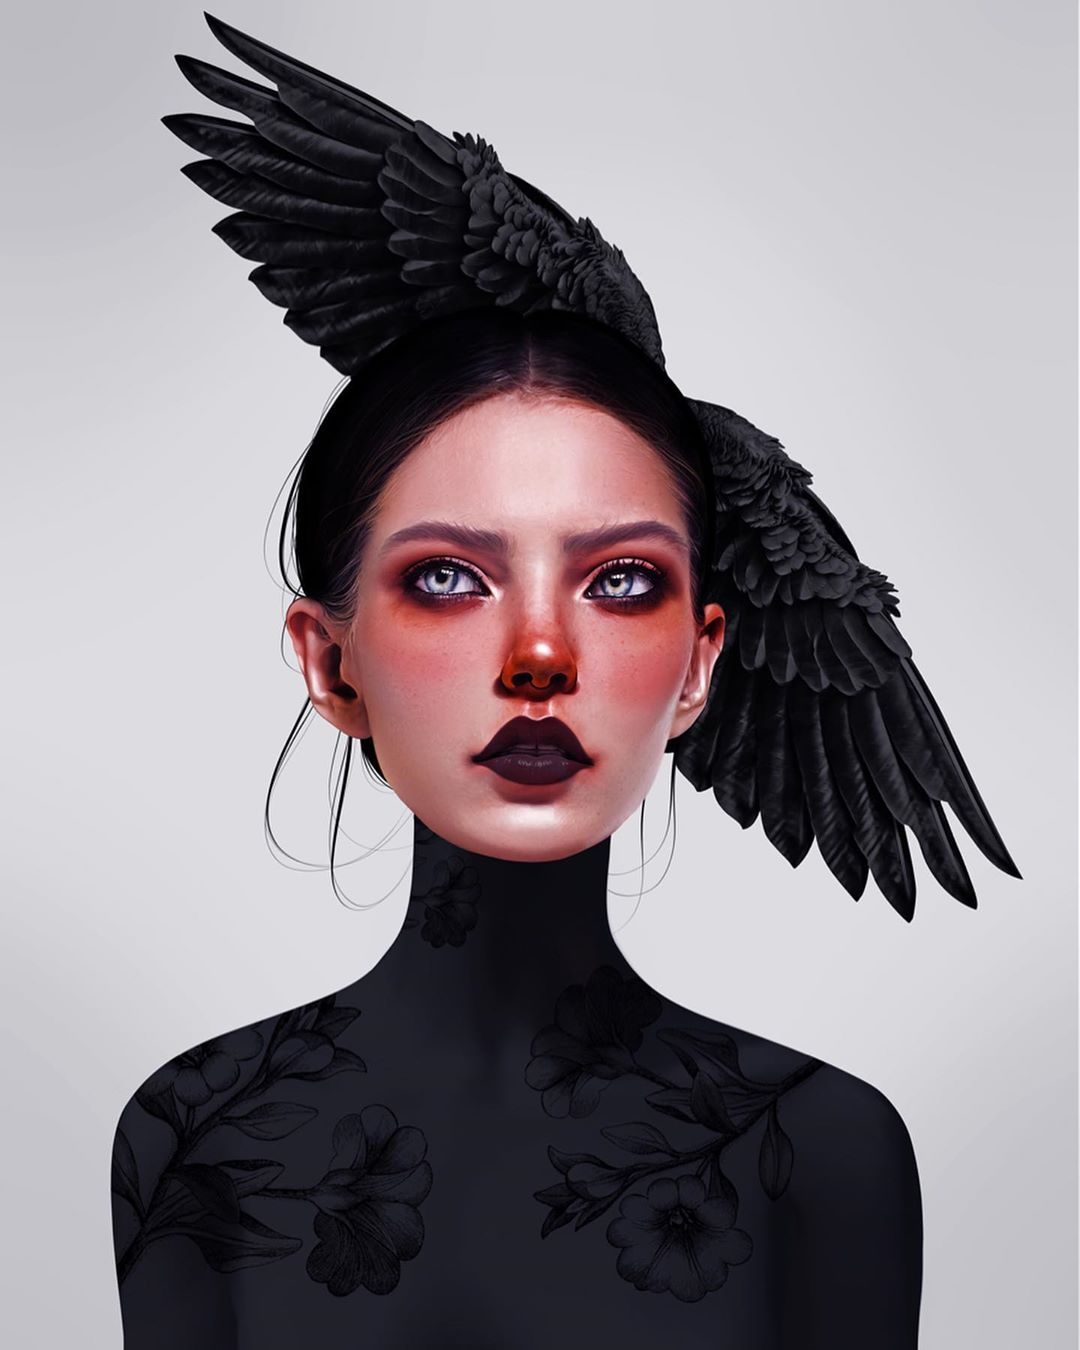 26-Year-Old Digital Artist With Model Looks Creates Stunning Female Illustrations On Tablet 7